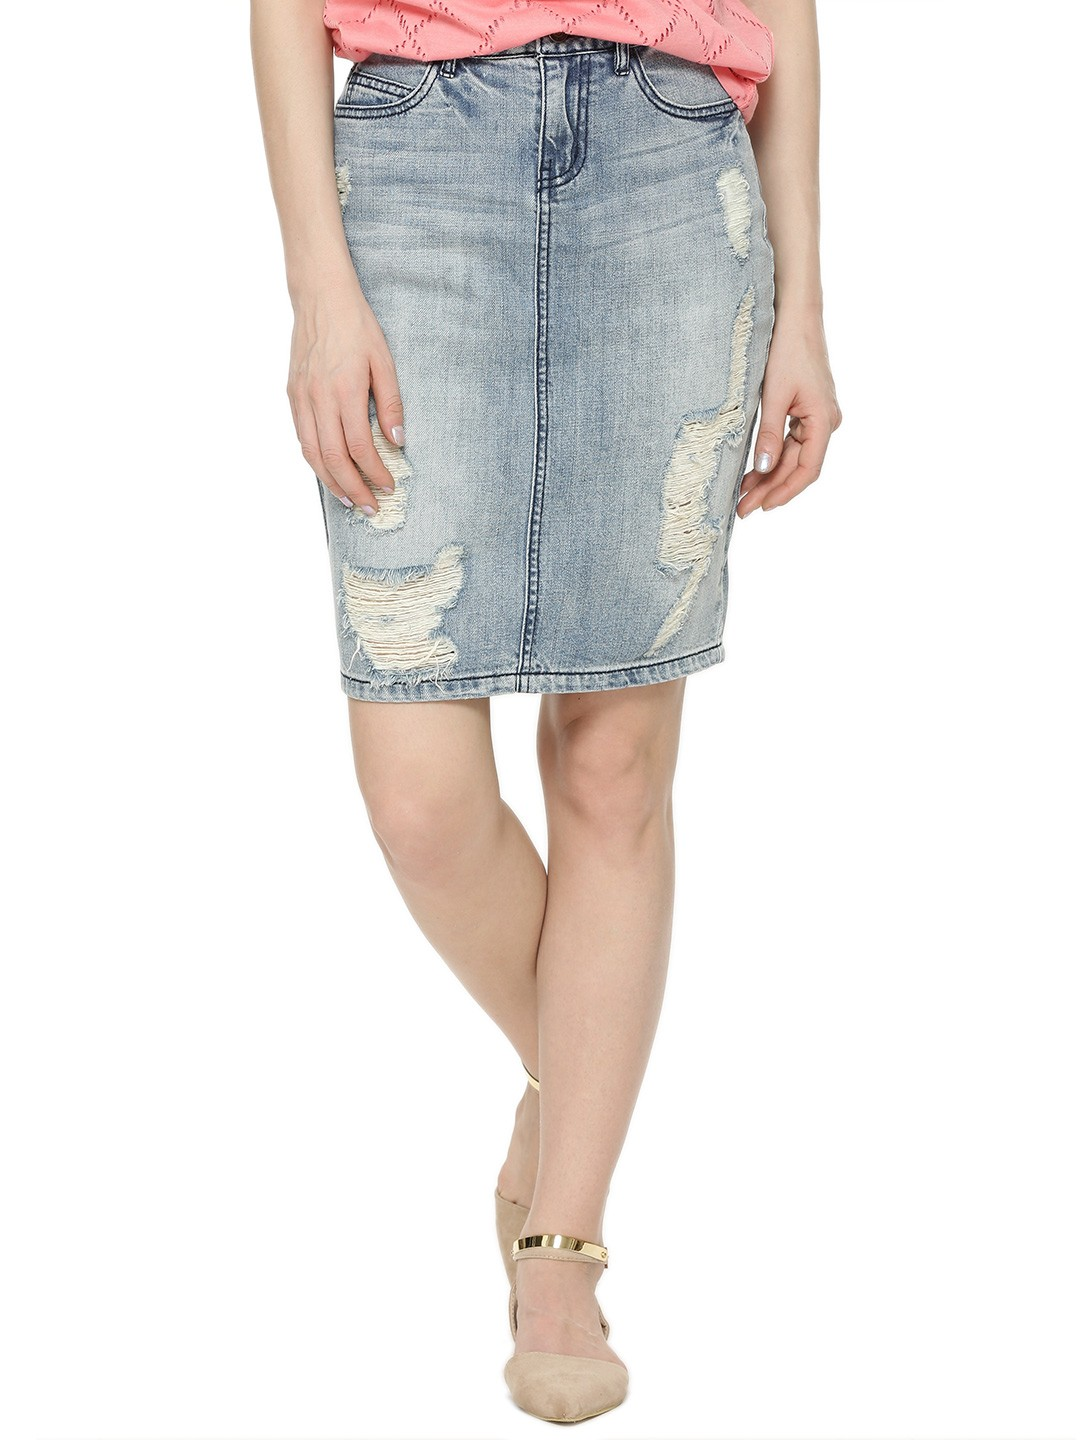 Buy VERO MODA Denim Skirt For Women - Women's Blue Pencil Skirts ...